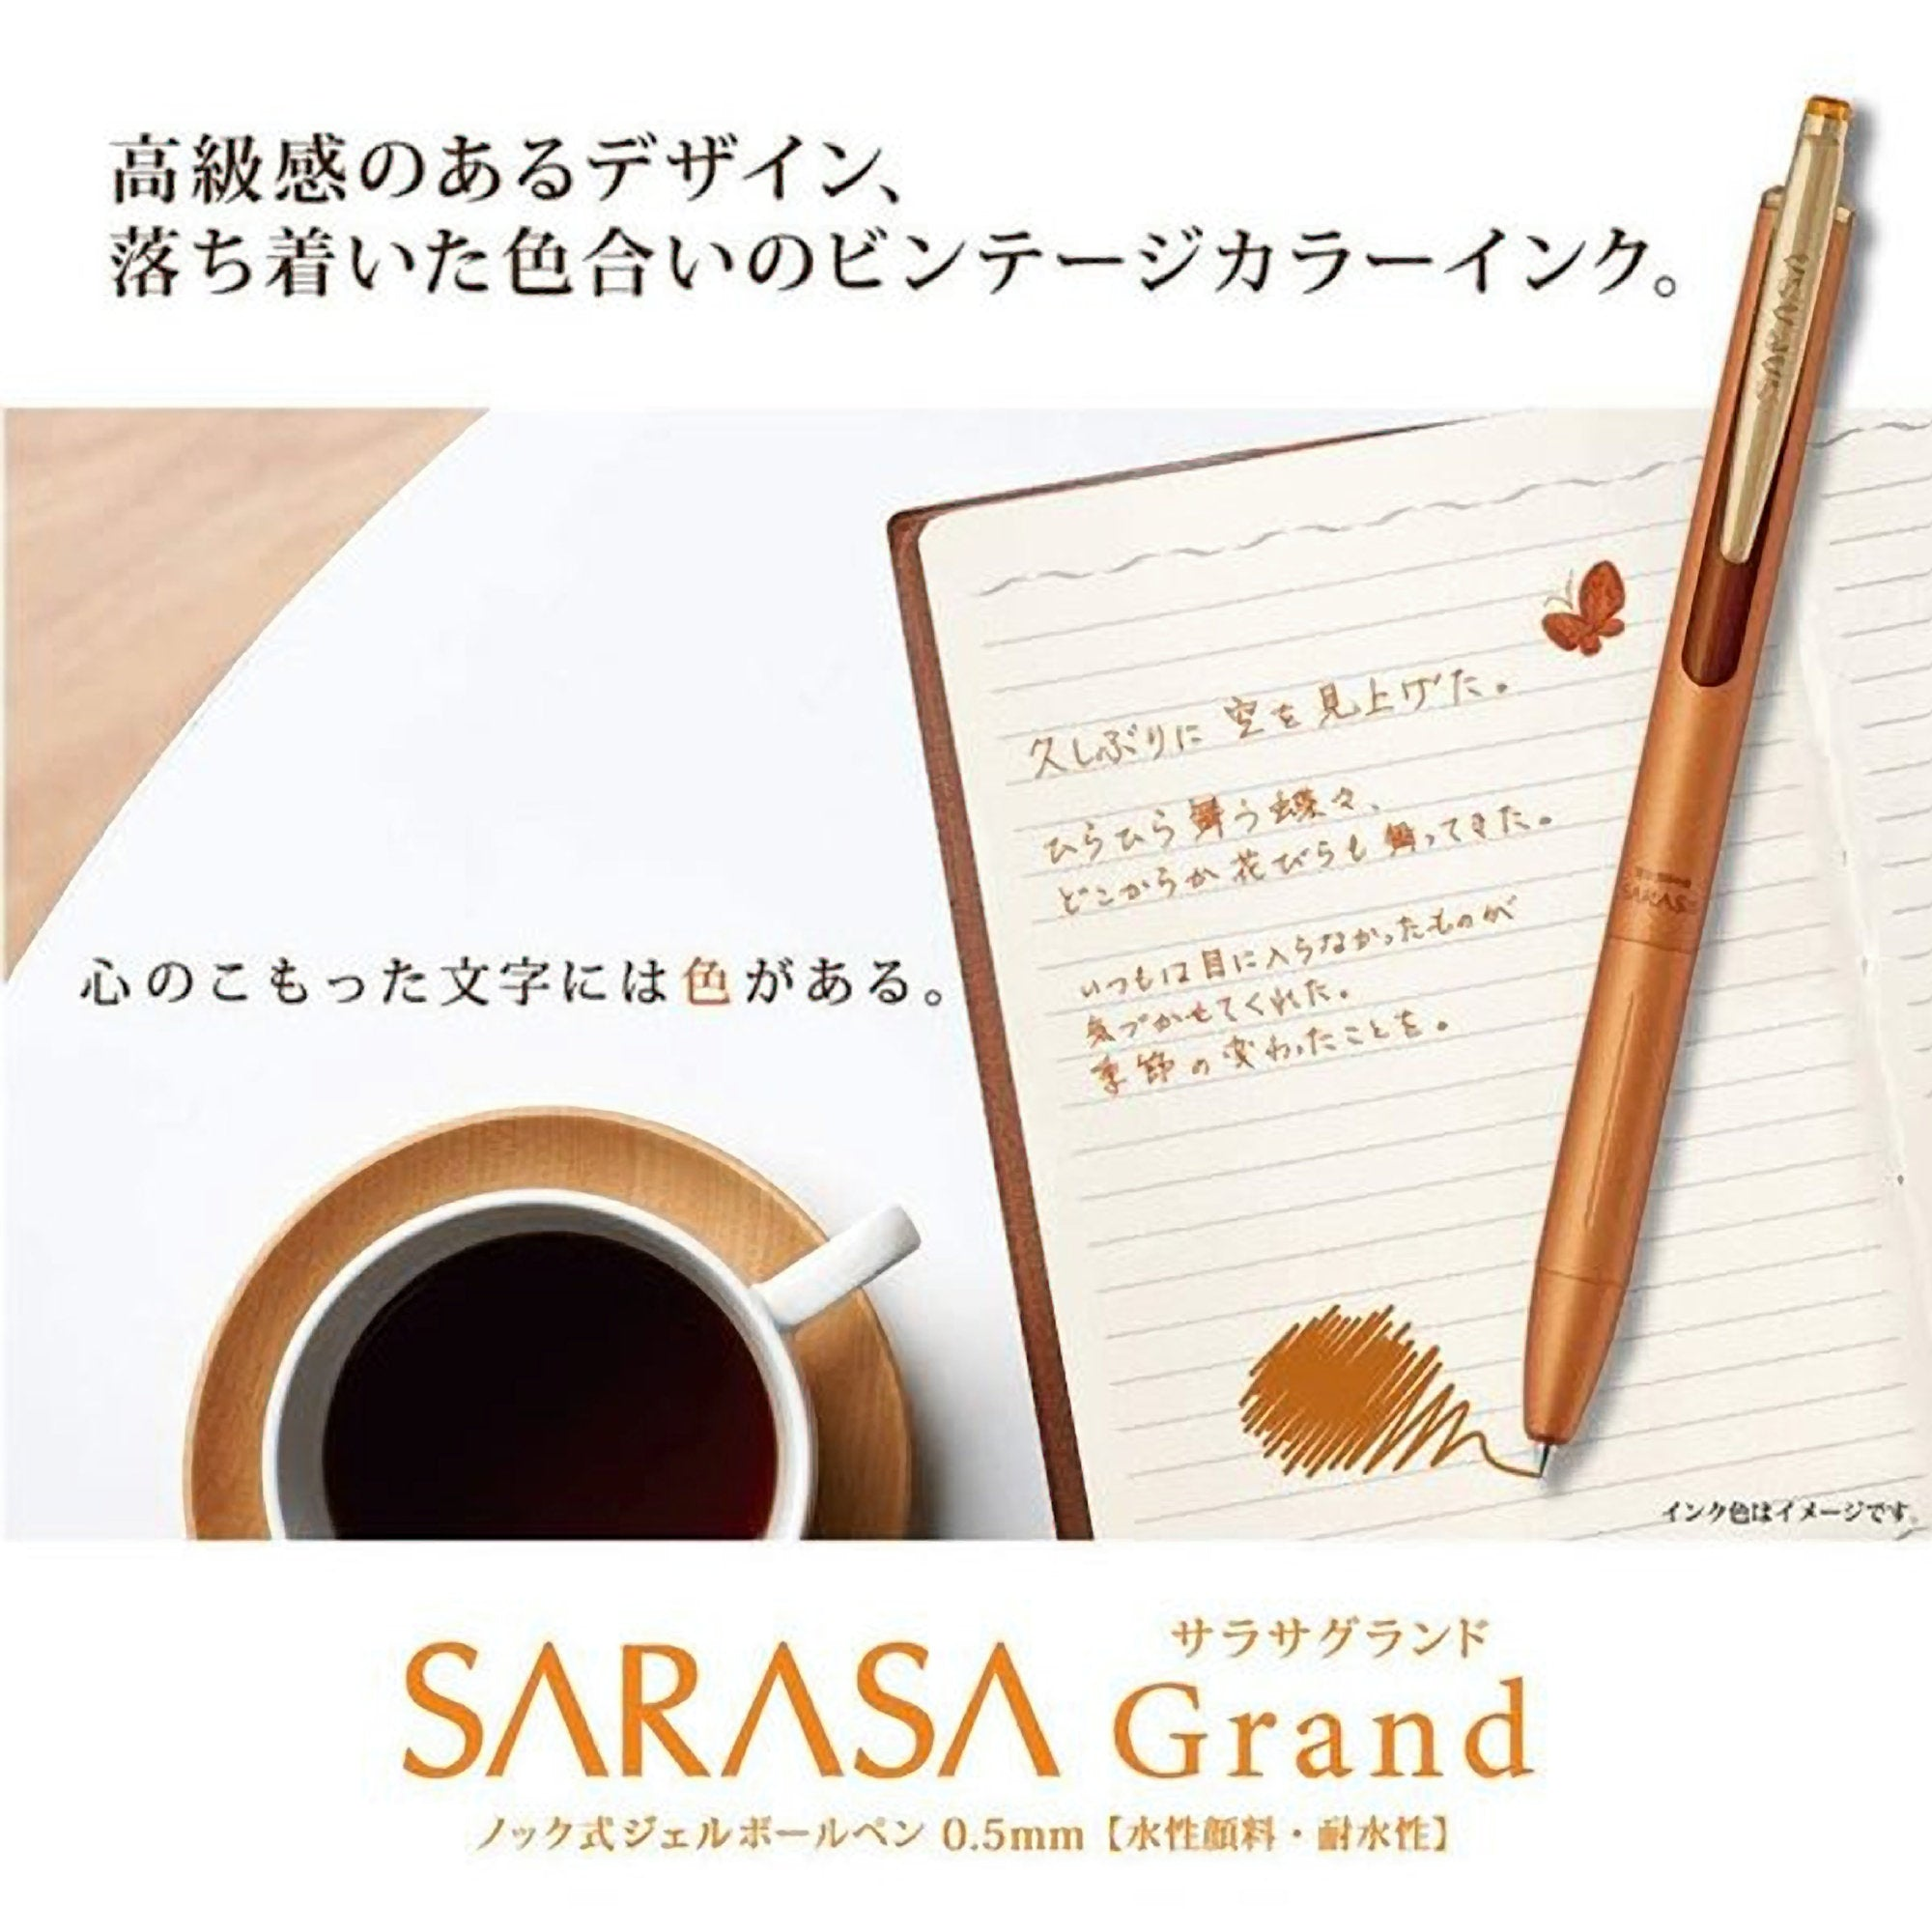 Zebra Sarasa GRAND BLUE GRAY Metal Body Vintage 0.5mm Push Clip Gel Pen | 2020 Upgrade - The Stationery Life!